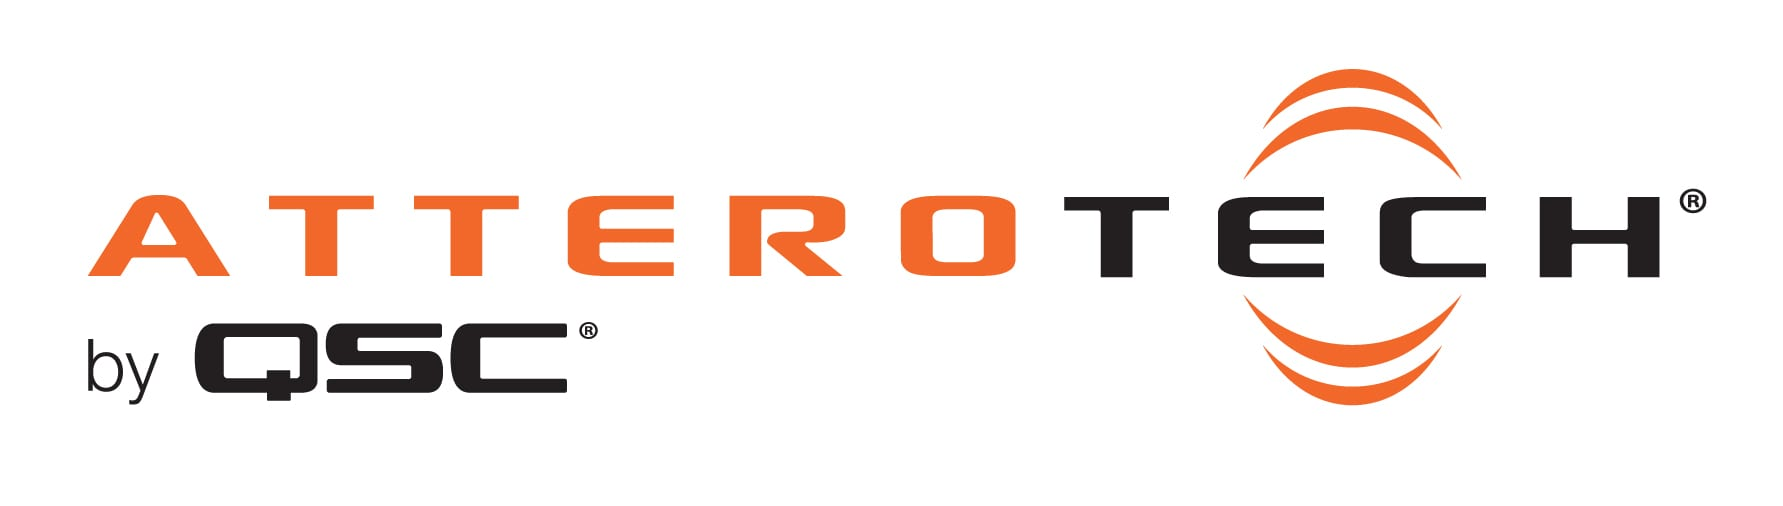 Attero Tech by QSC